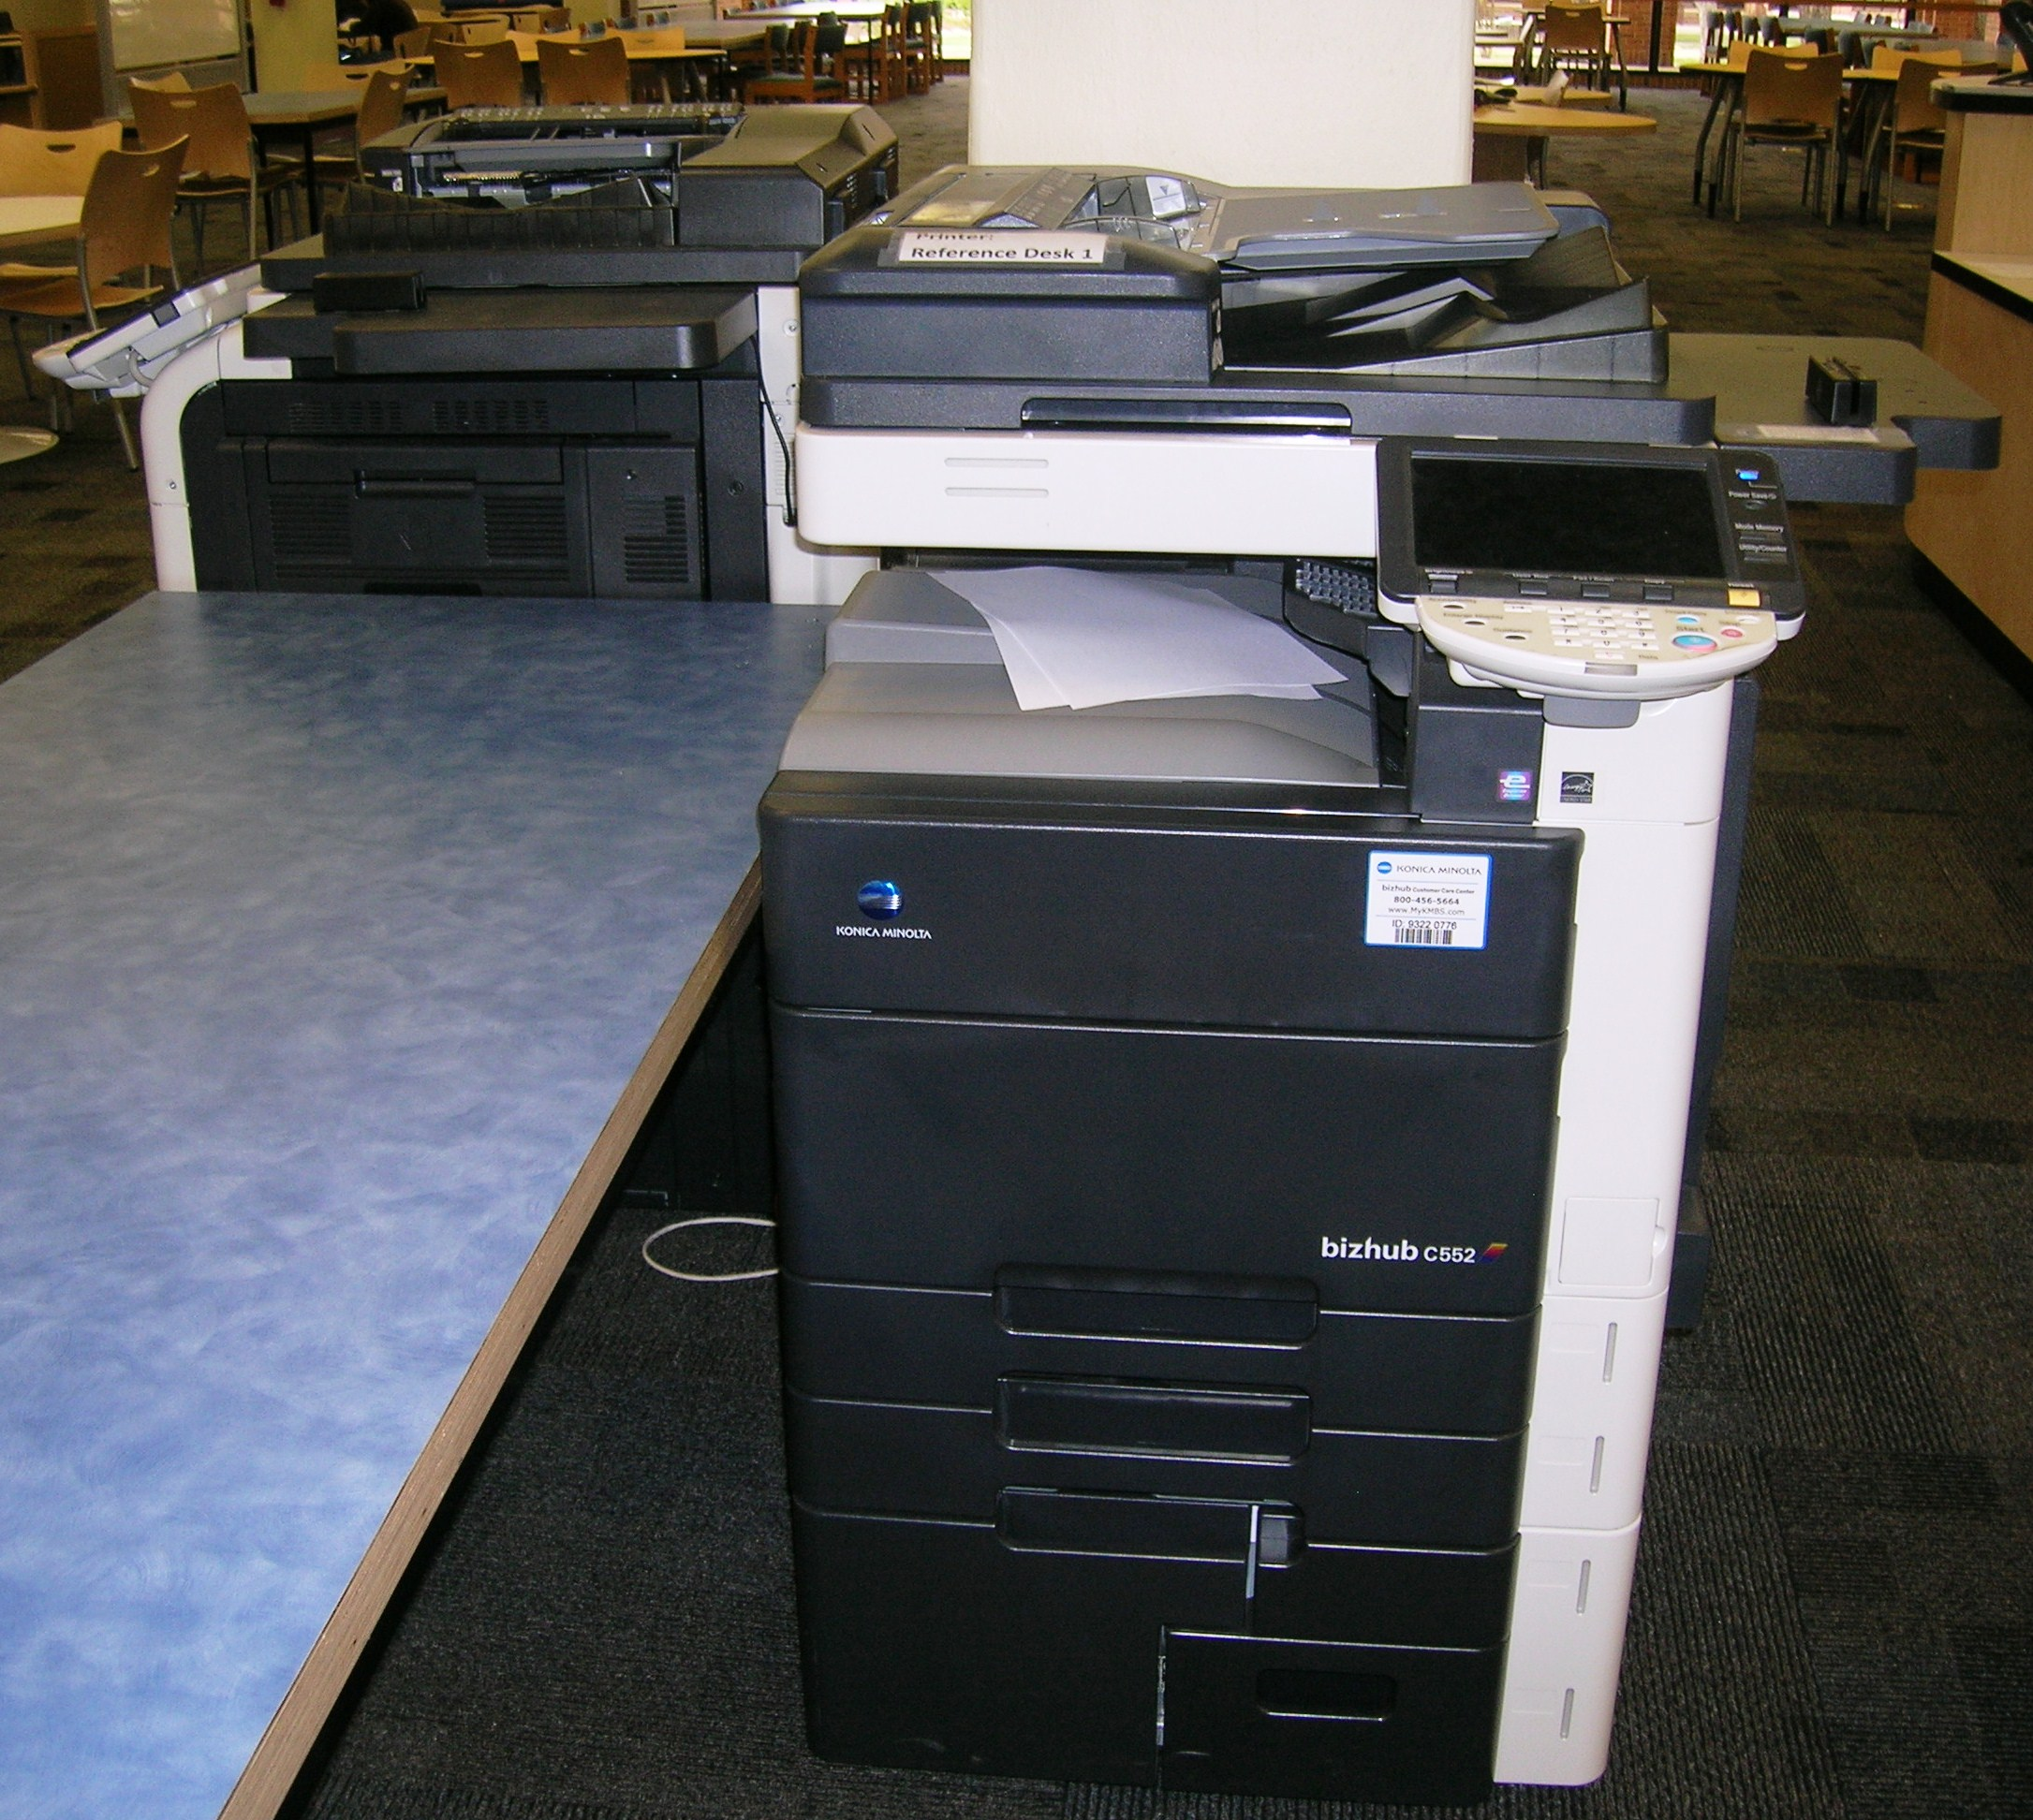 Printer/Copier/Scanner